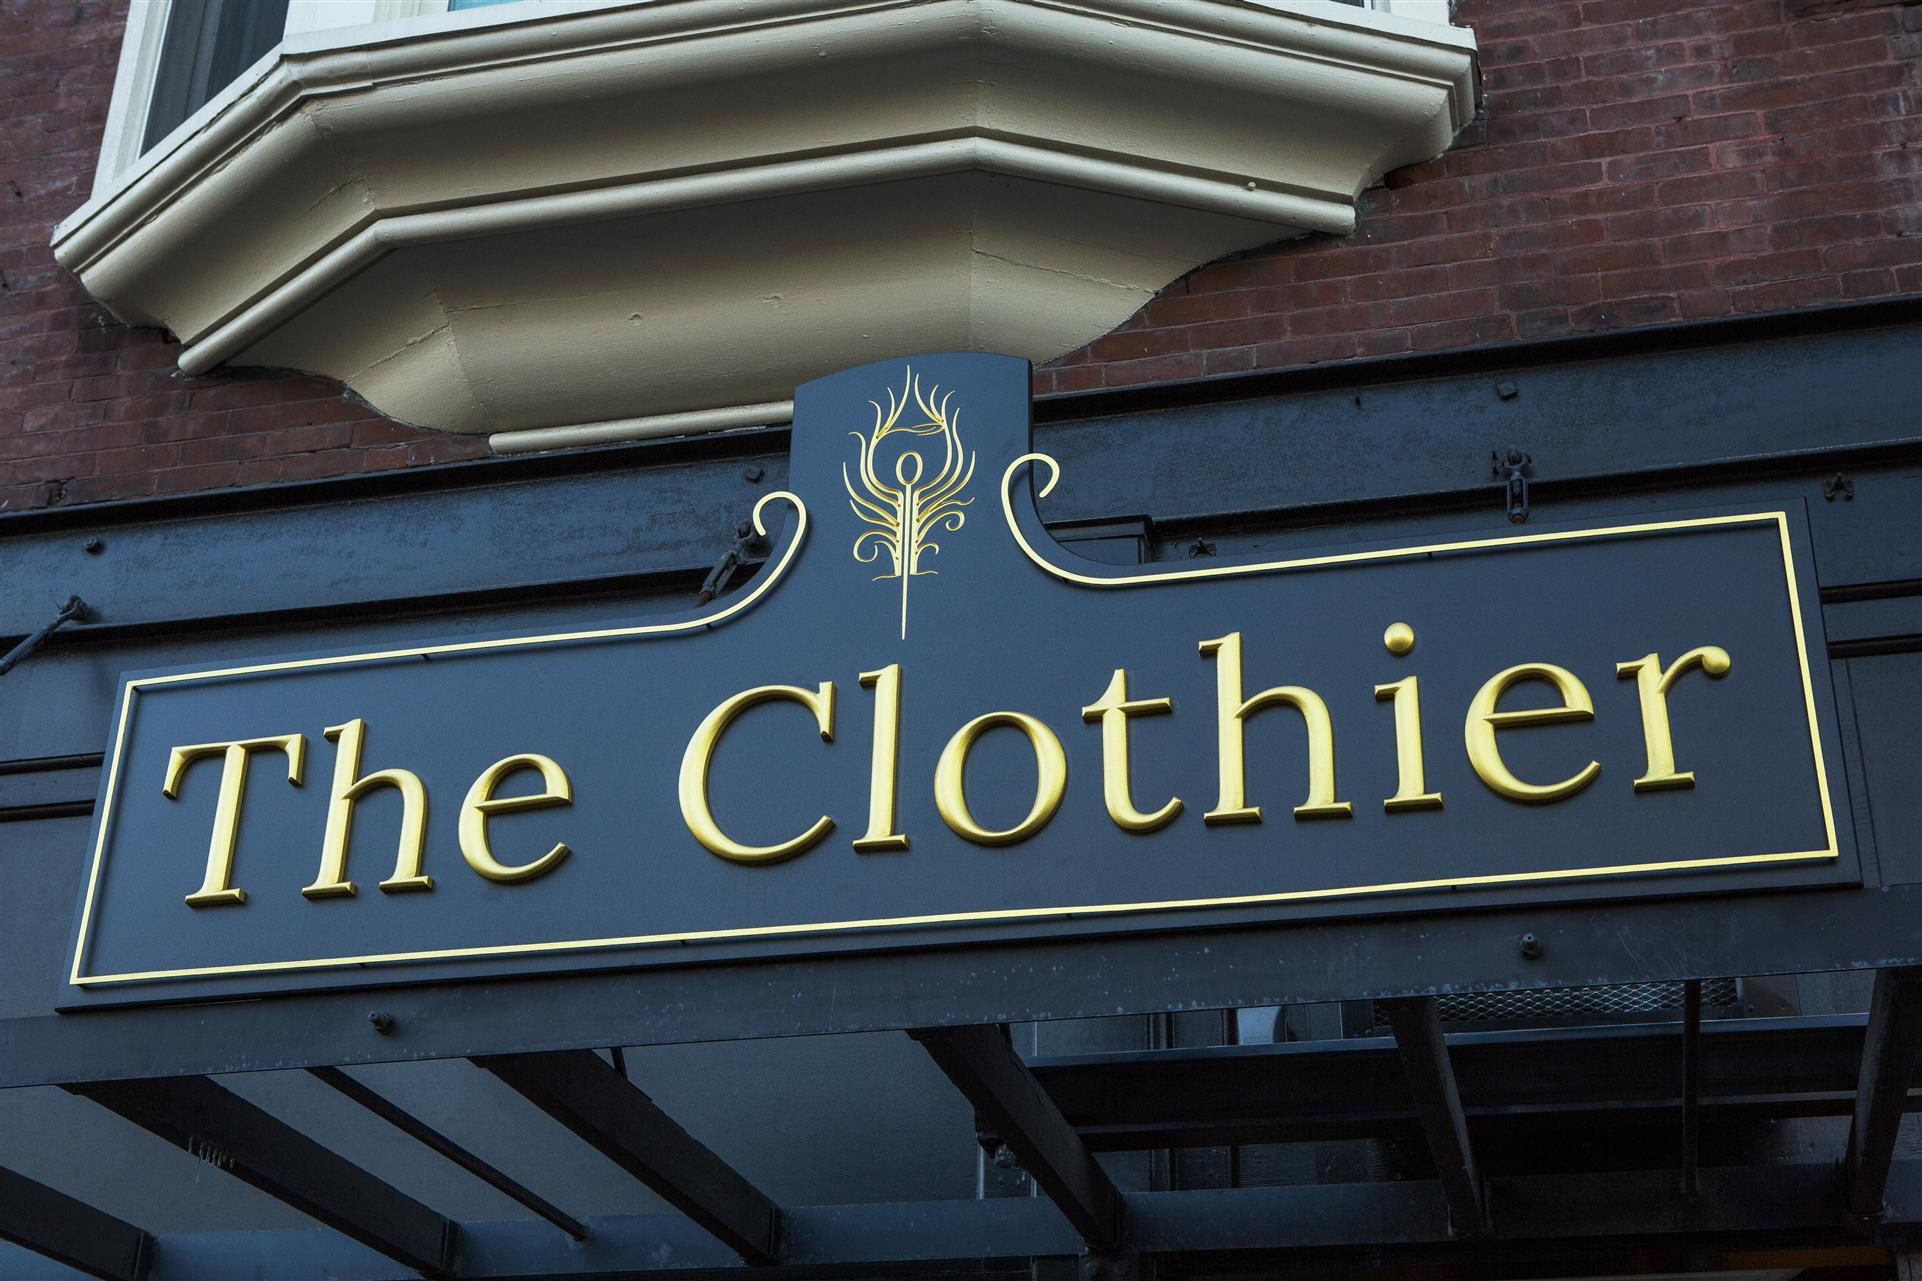 the clothier main entrance sign